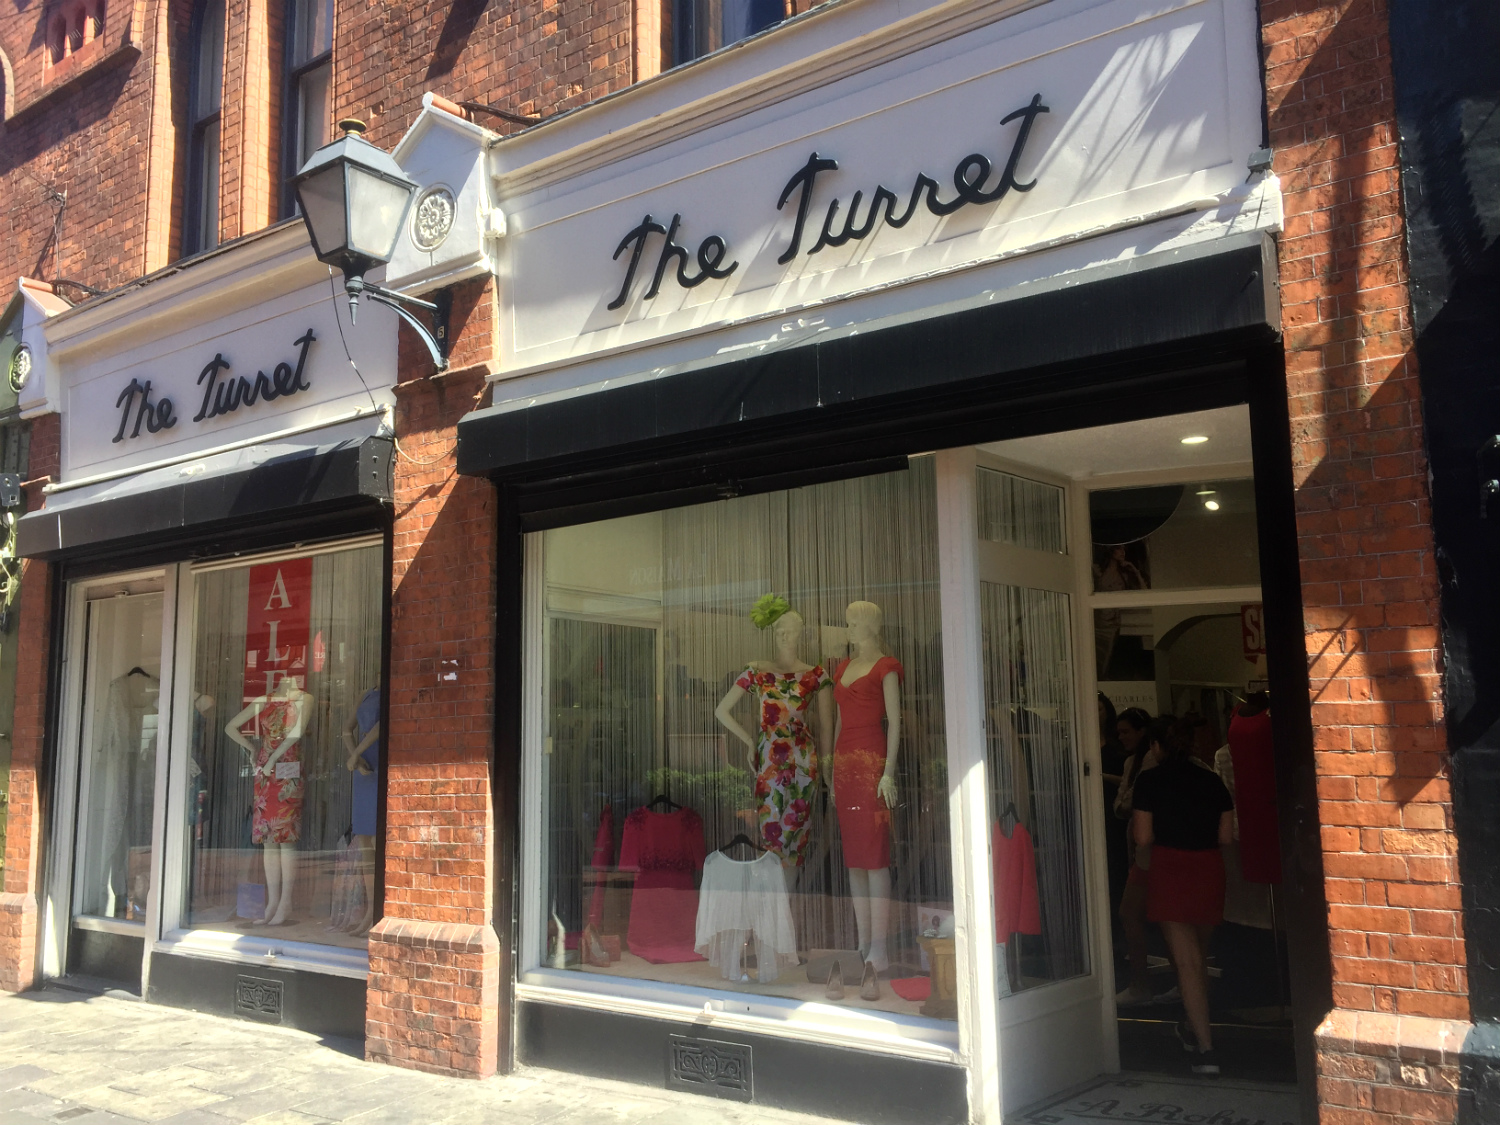 The Turret Boutique is Classy, Sophisticated with Dresses For All Occasions